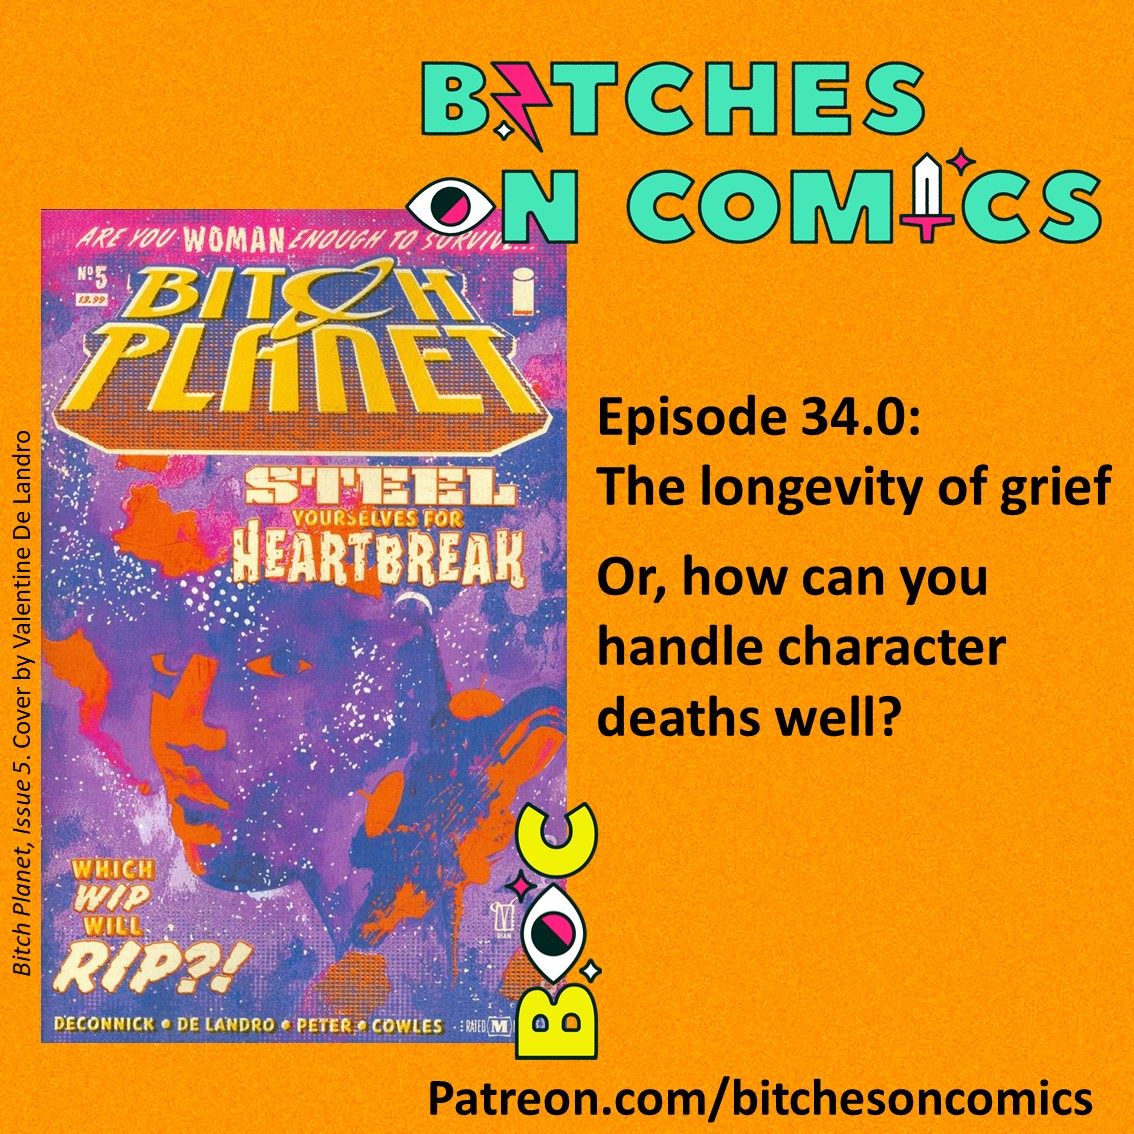 Bitches on Comics Bitch Planet